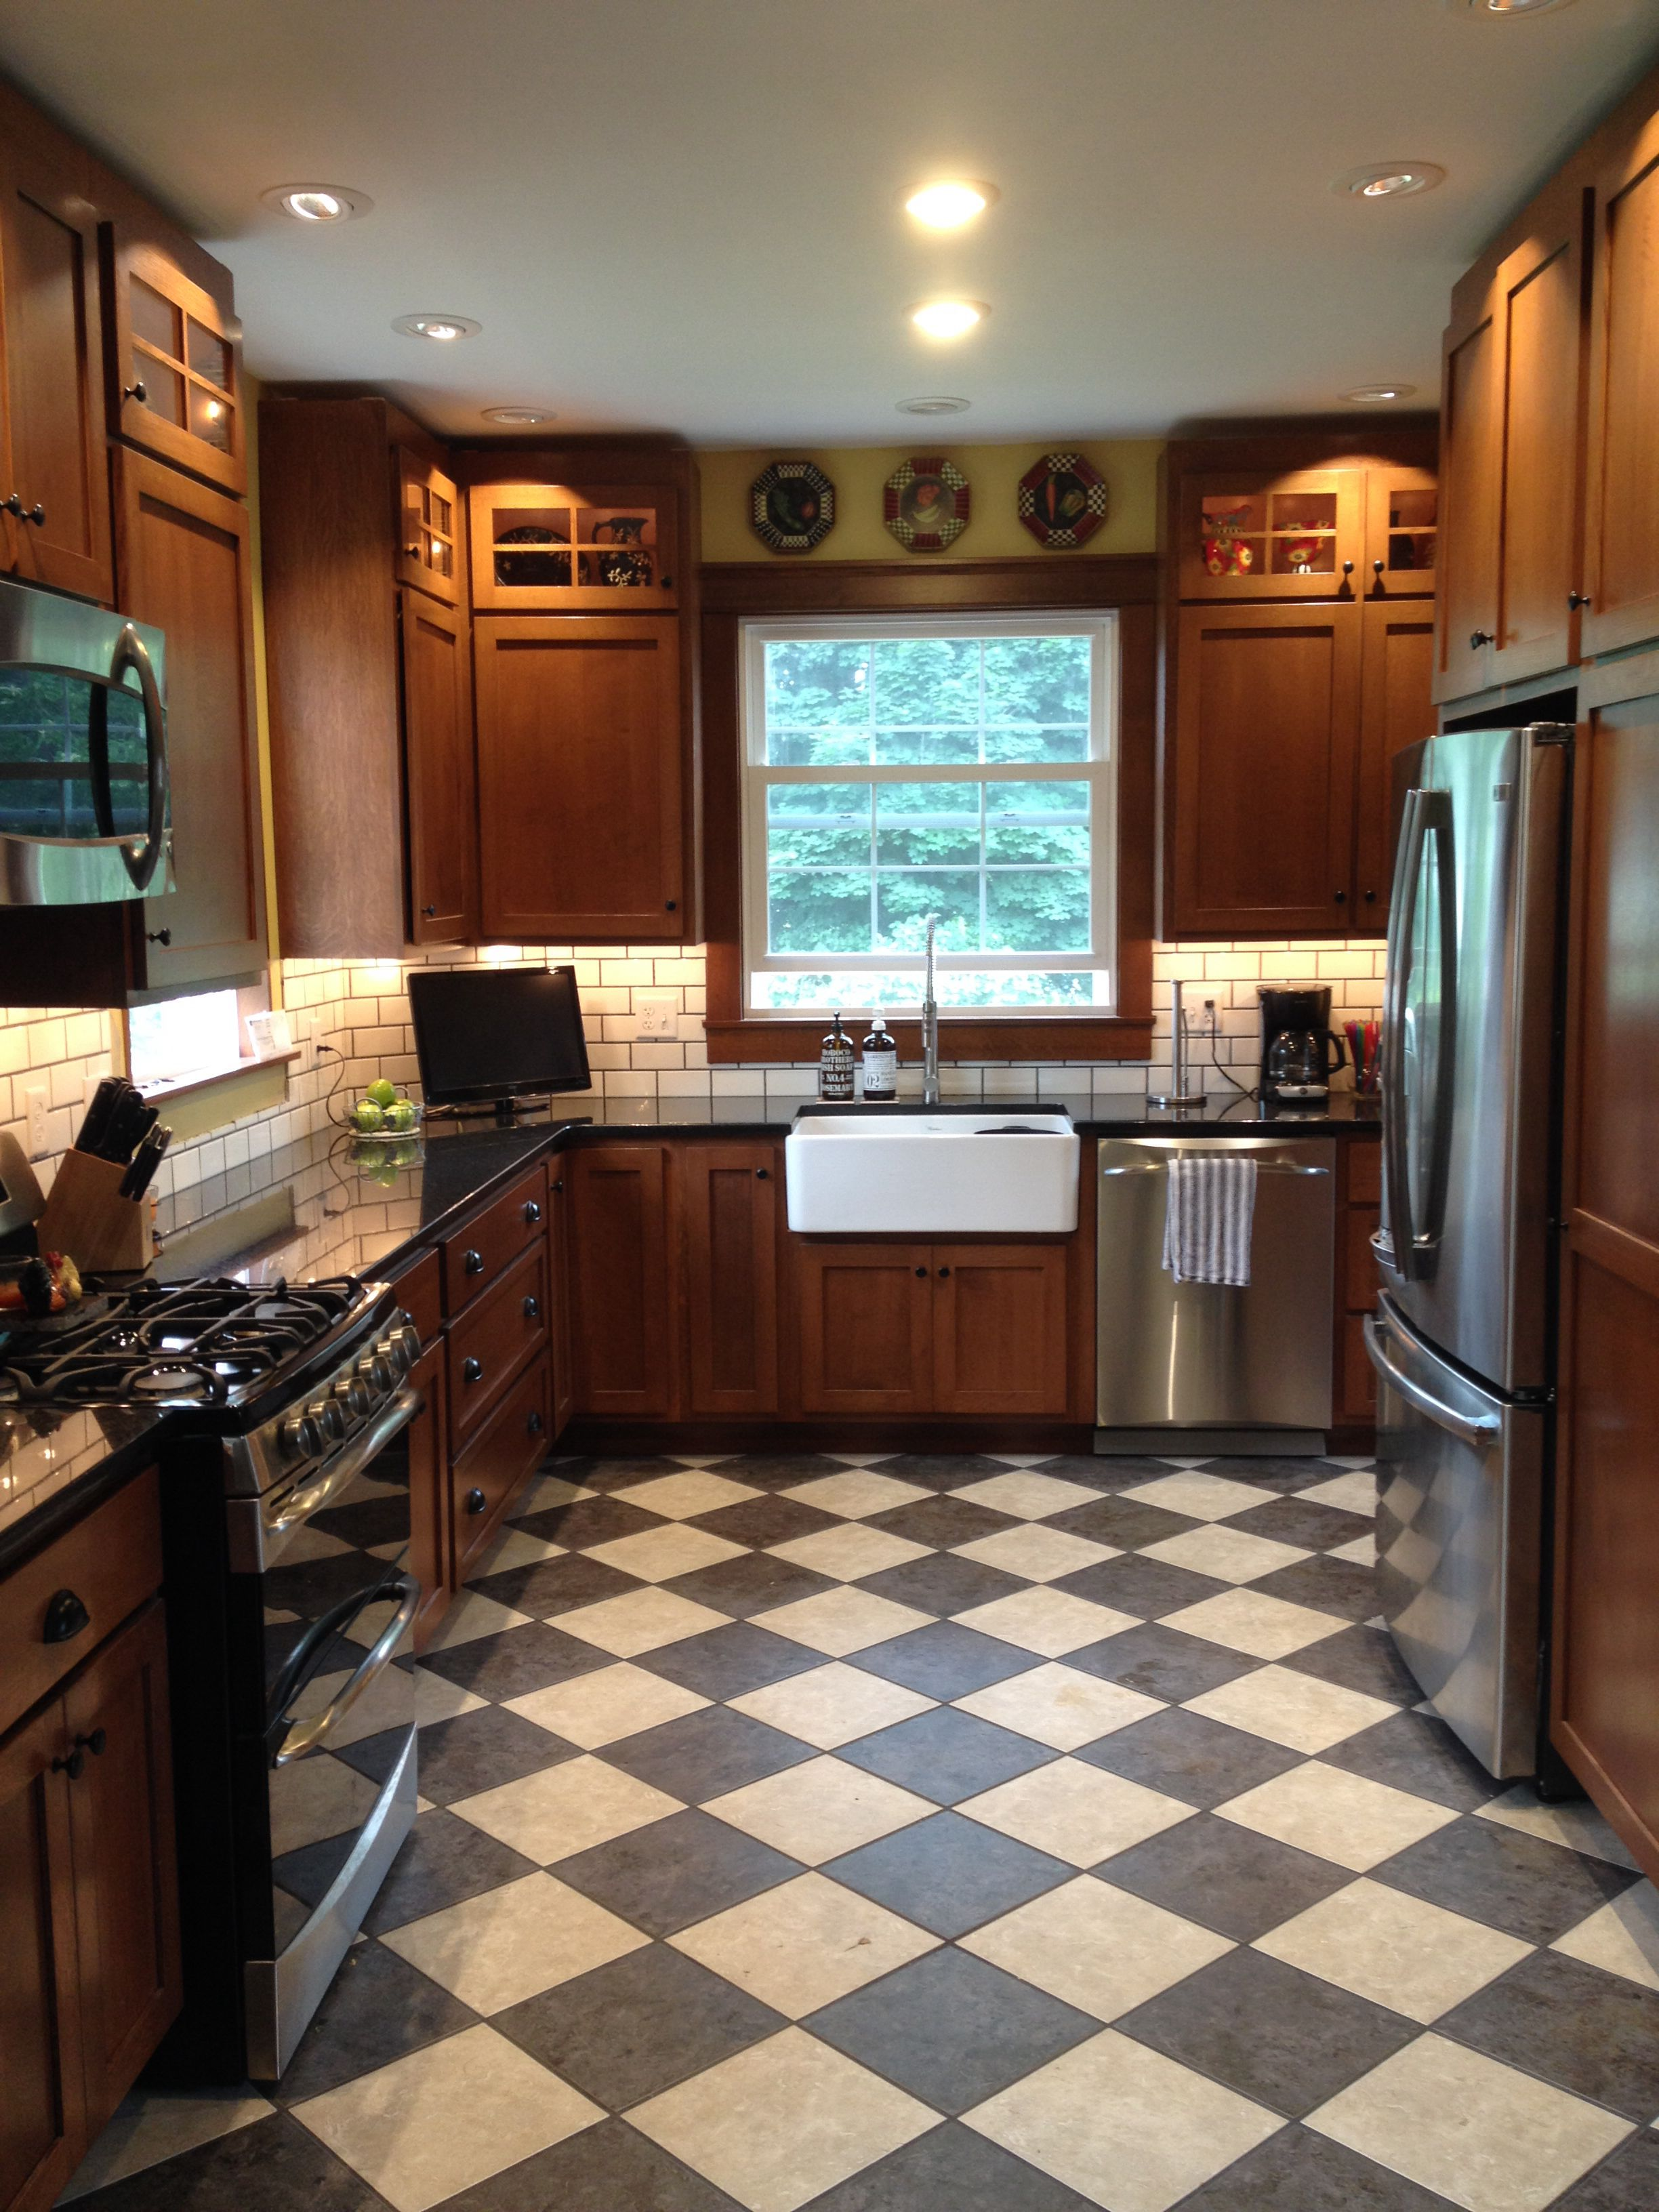 Circa 1890S Kitchen Remodel Checkerboard Floor Quarter Sawn Oak Cabinets